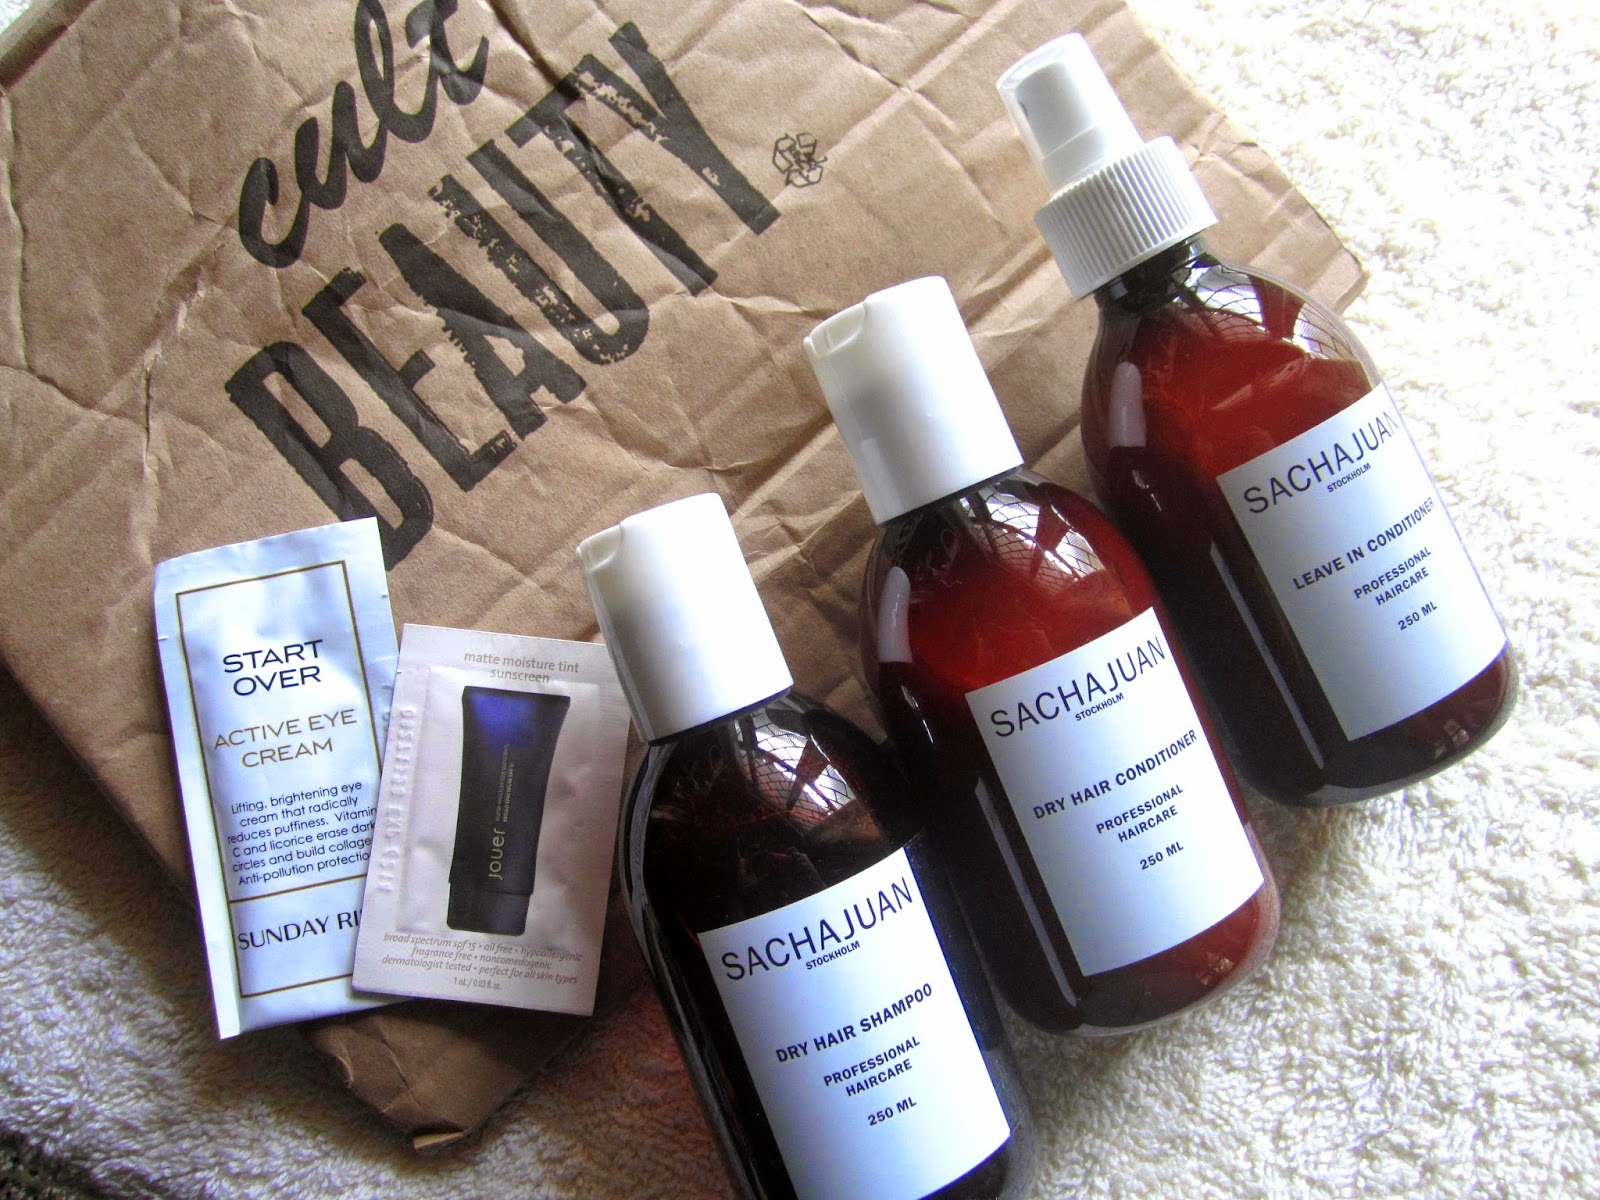 Cult Beauty Haul ft. Sachajuan